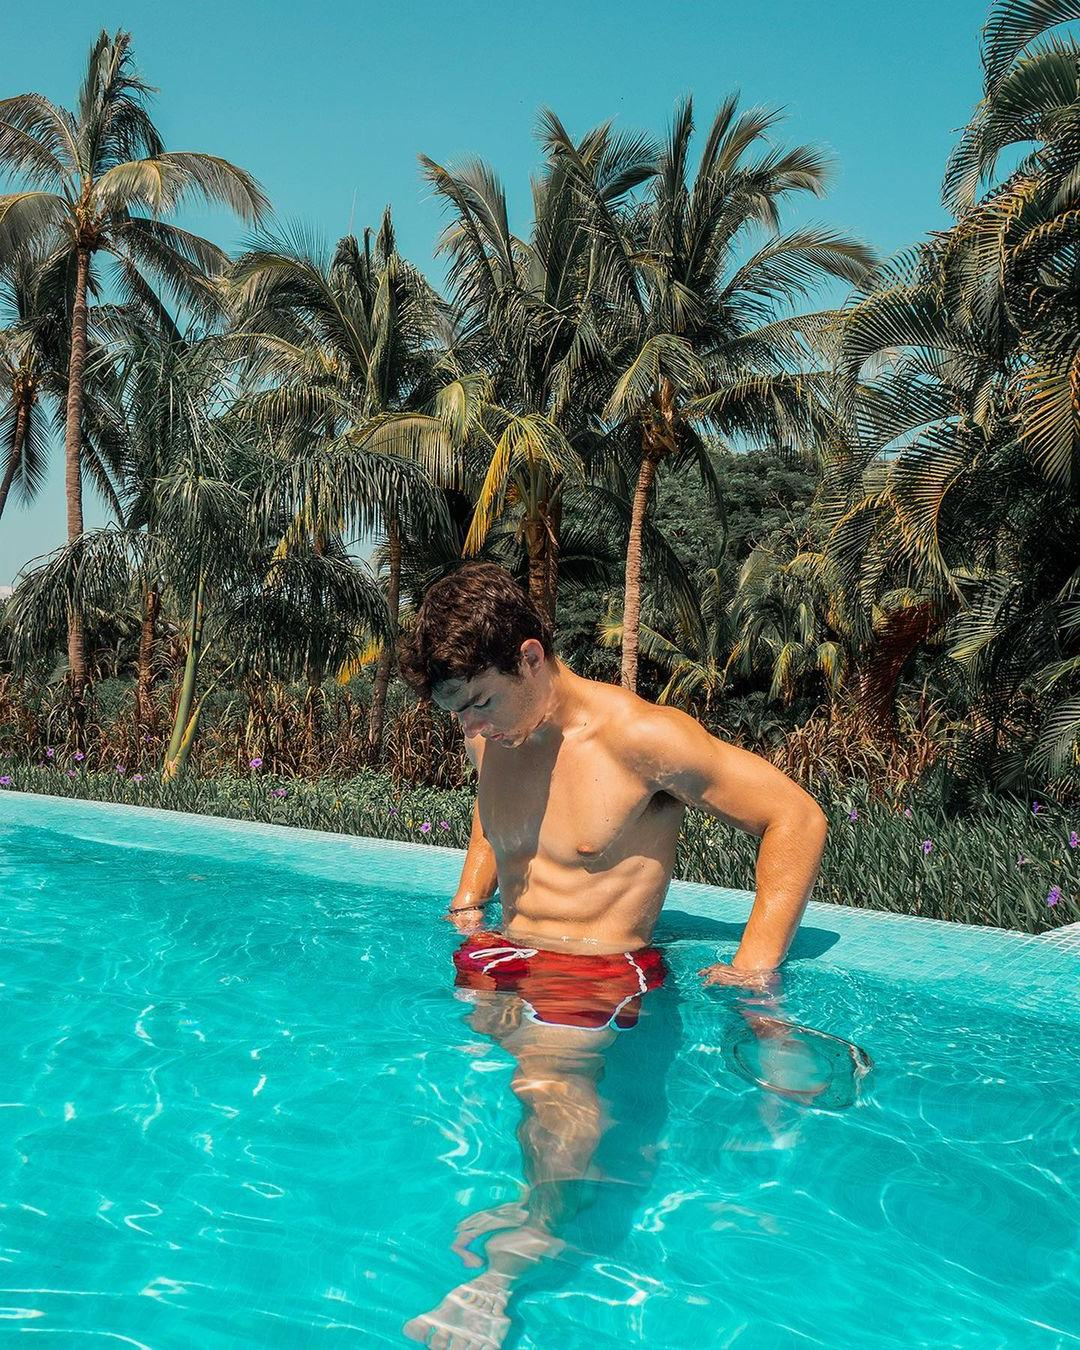 fit-shirtless-pool-boy-keith-laue-wet-body-palms-summer